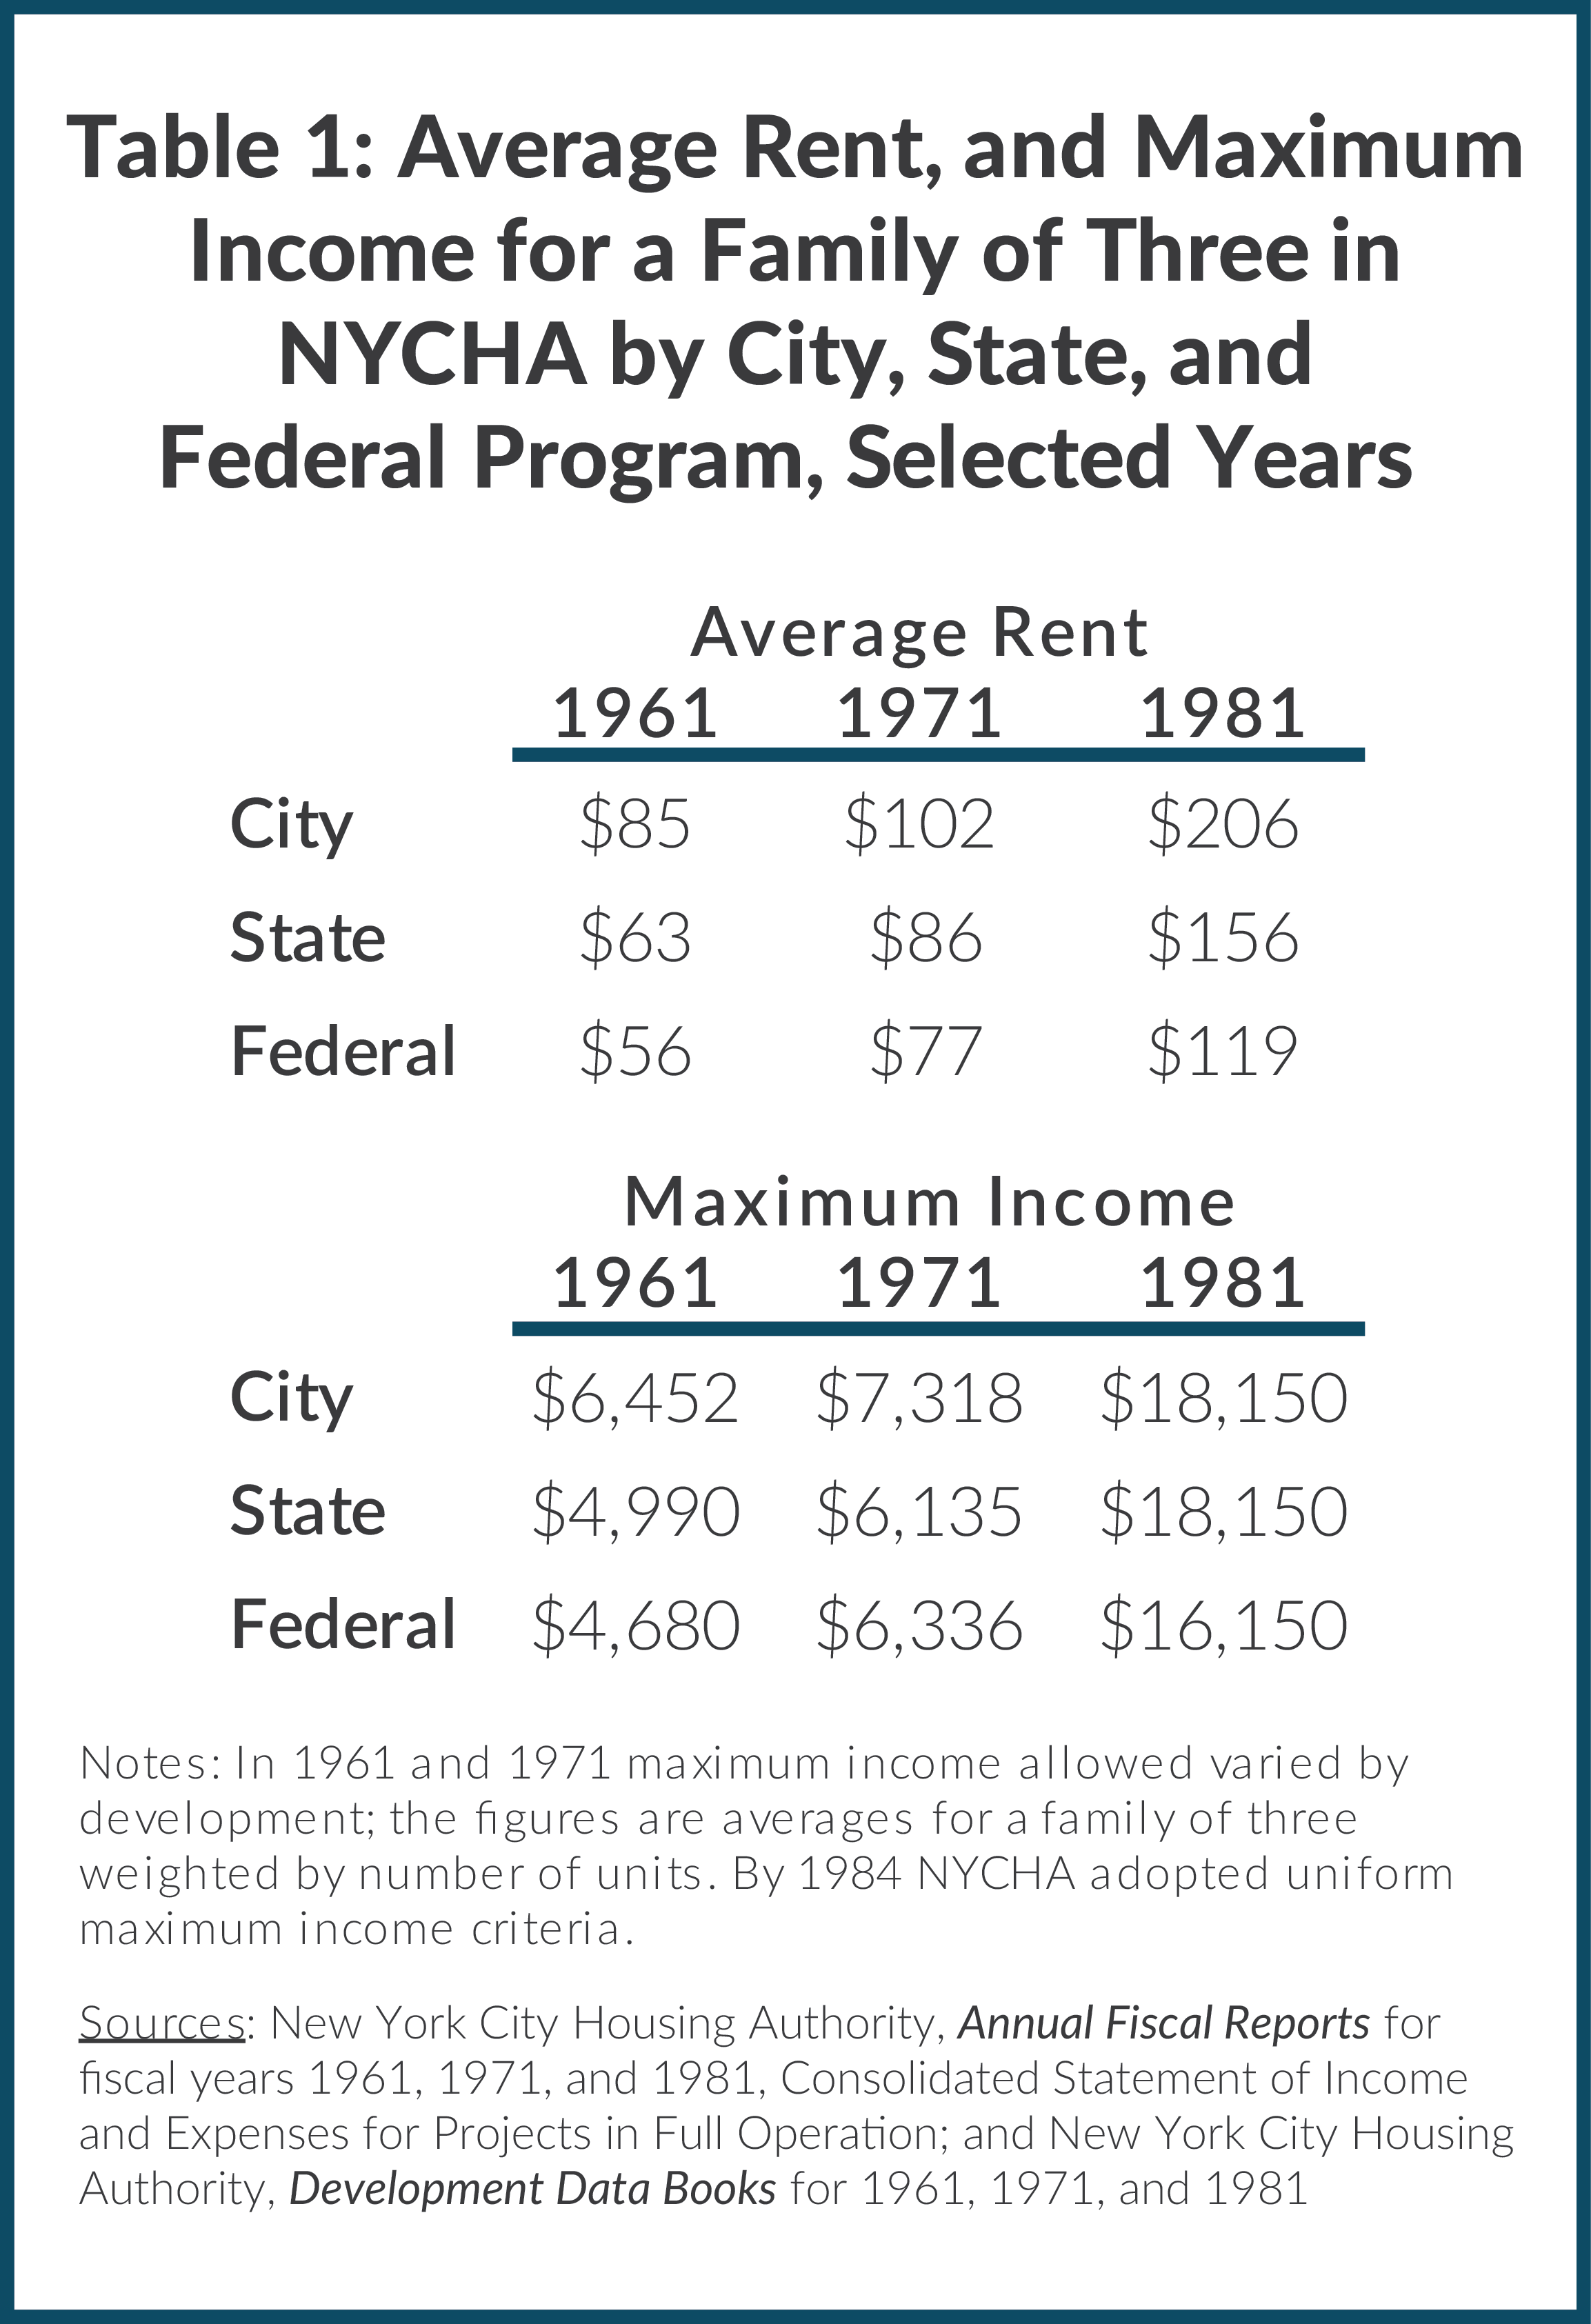 Table 1: Average Rent, and Maximum Income for a Family of Three in NYCHA by City, State, and Federal Program, Selected Years